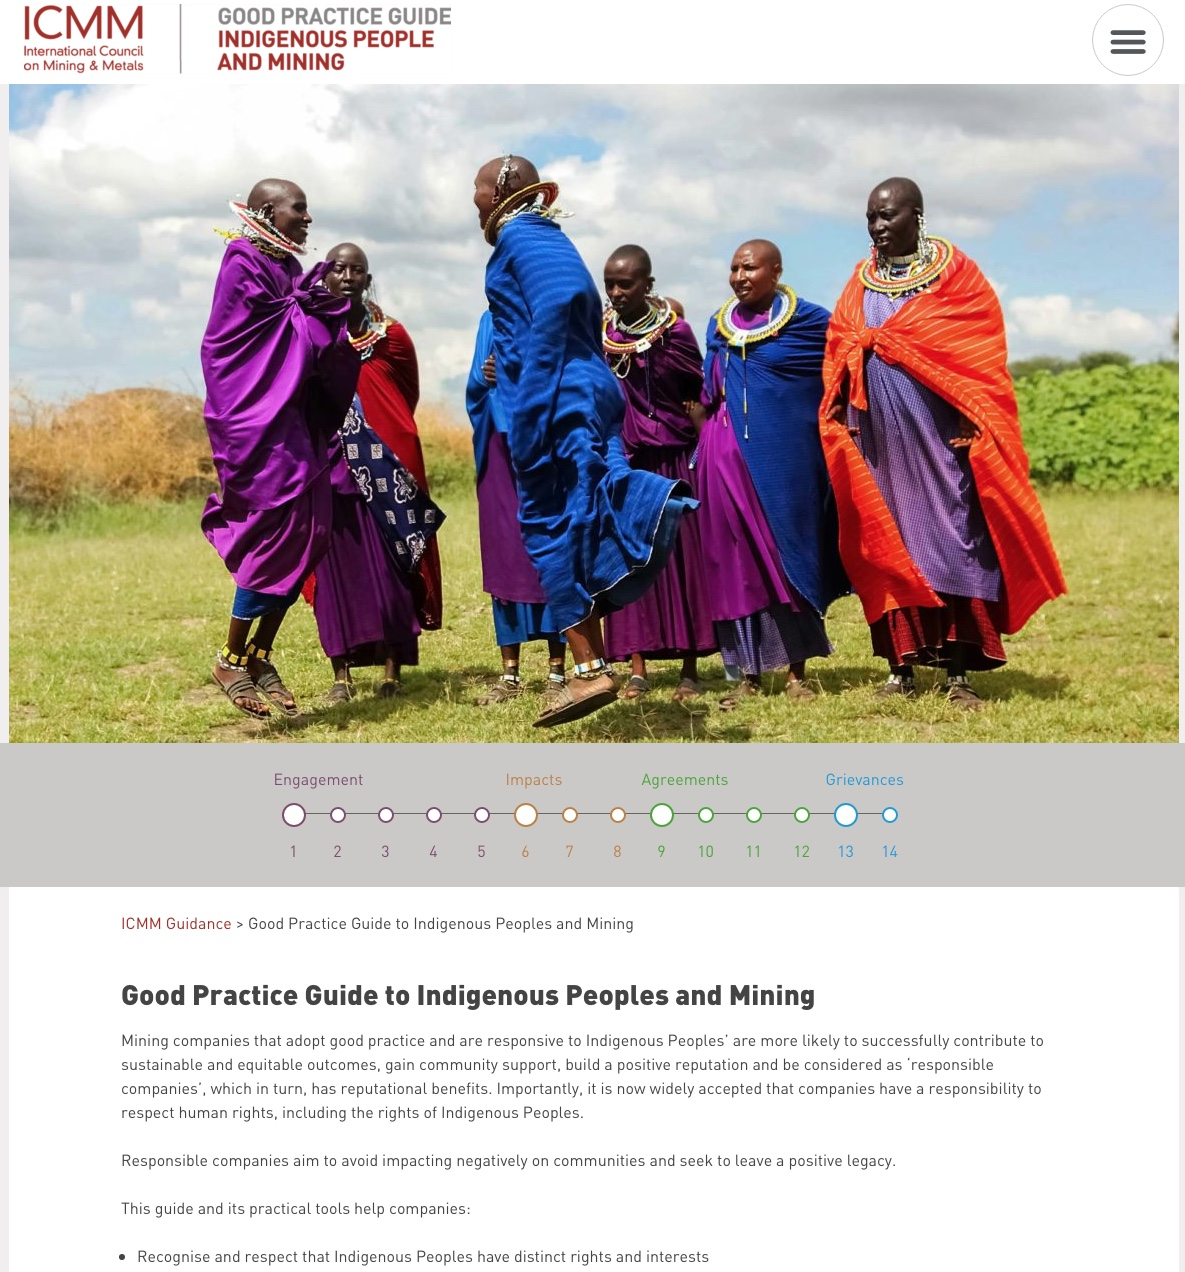 Good Practice Guide to Indigenous Peoples and Mining